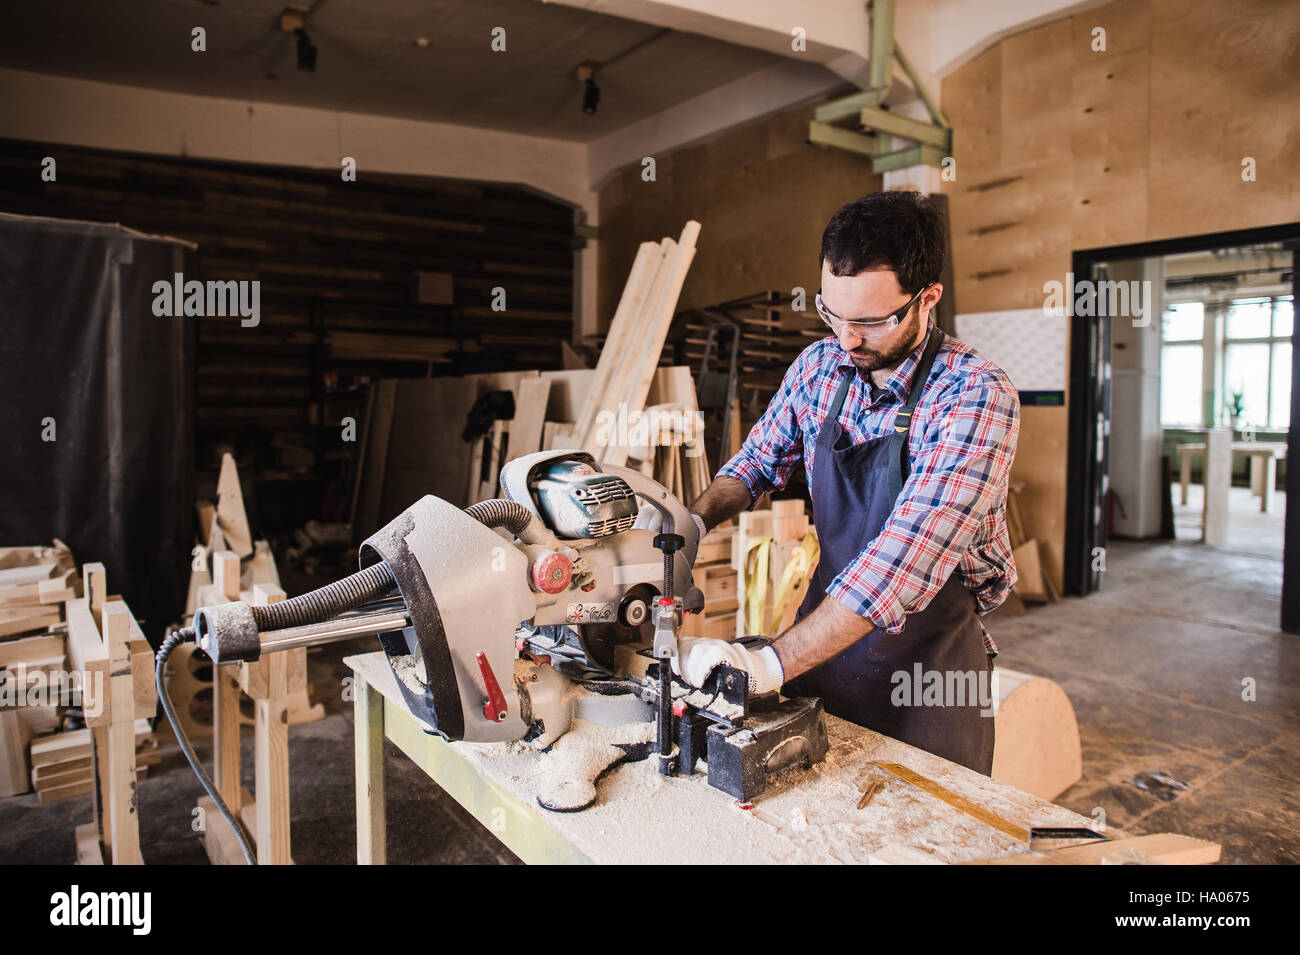 Young craftsman in uniform working at carpentry - Stock Image